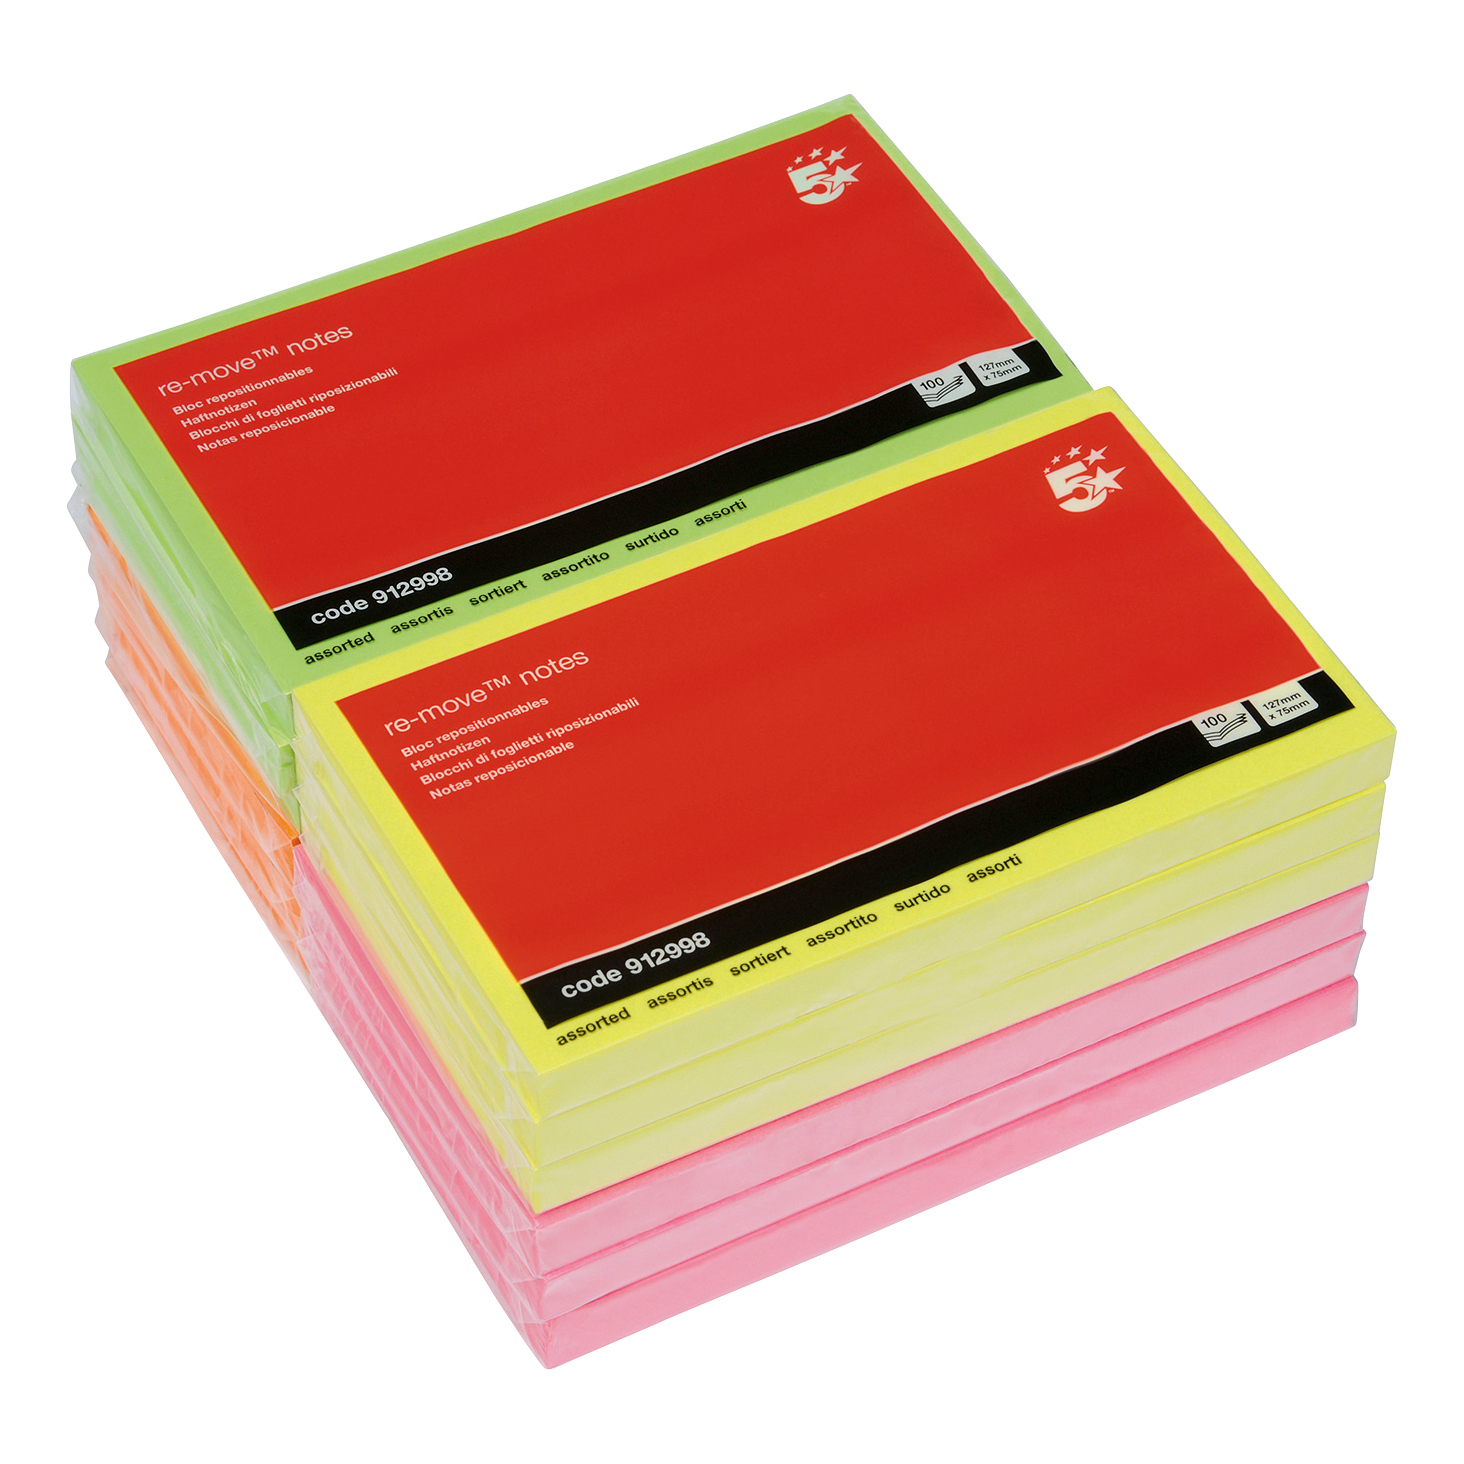 5 Star Office Re-Move Notes Repositionable Neon Pad of 100 Sheets 76x127mm Assorted Pack 12